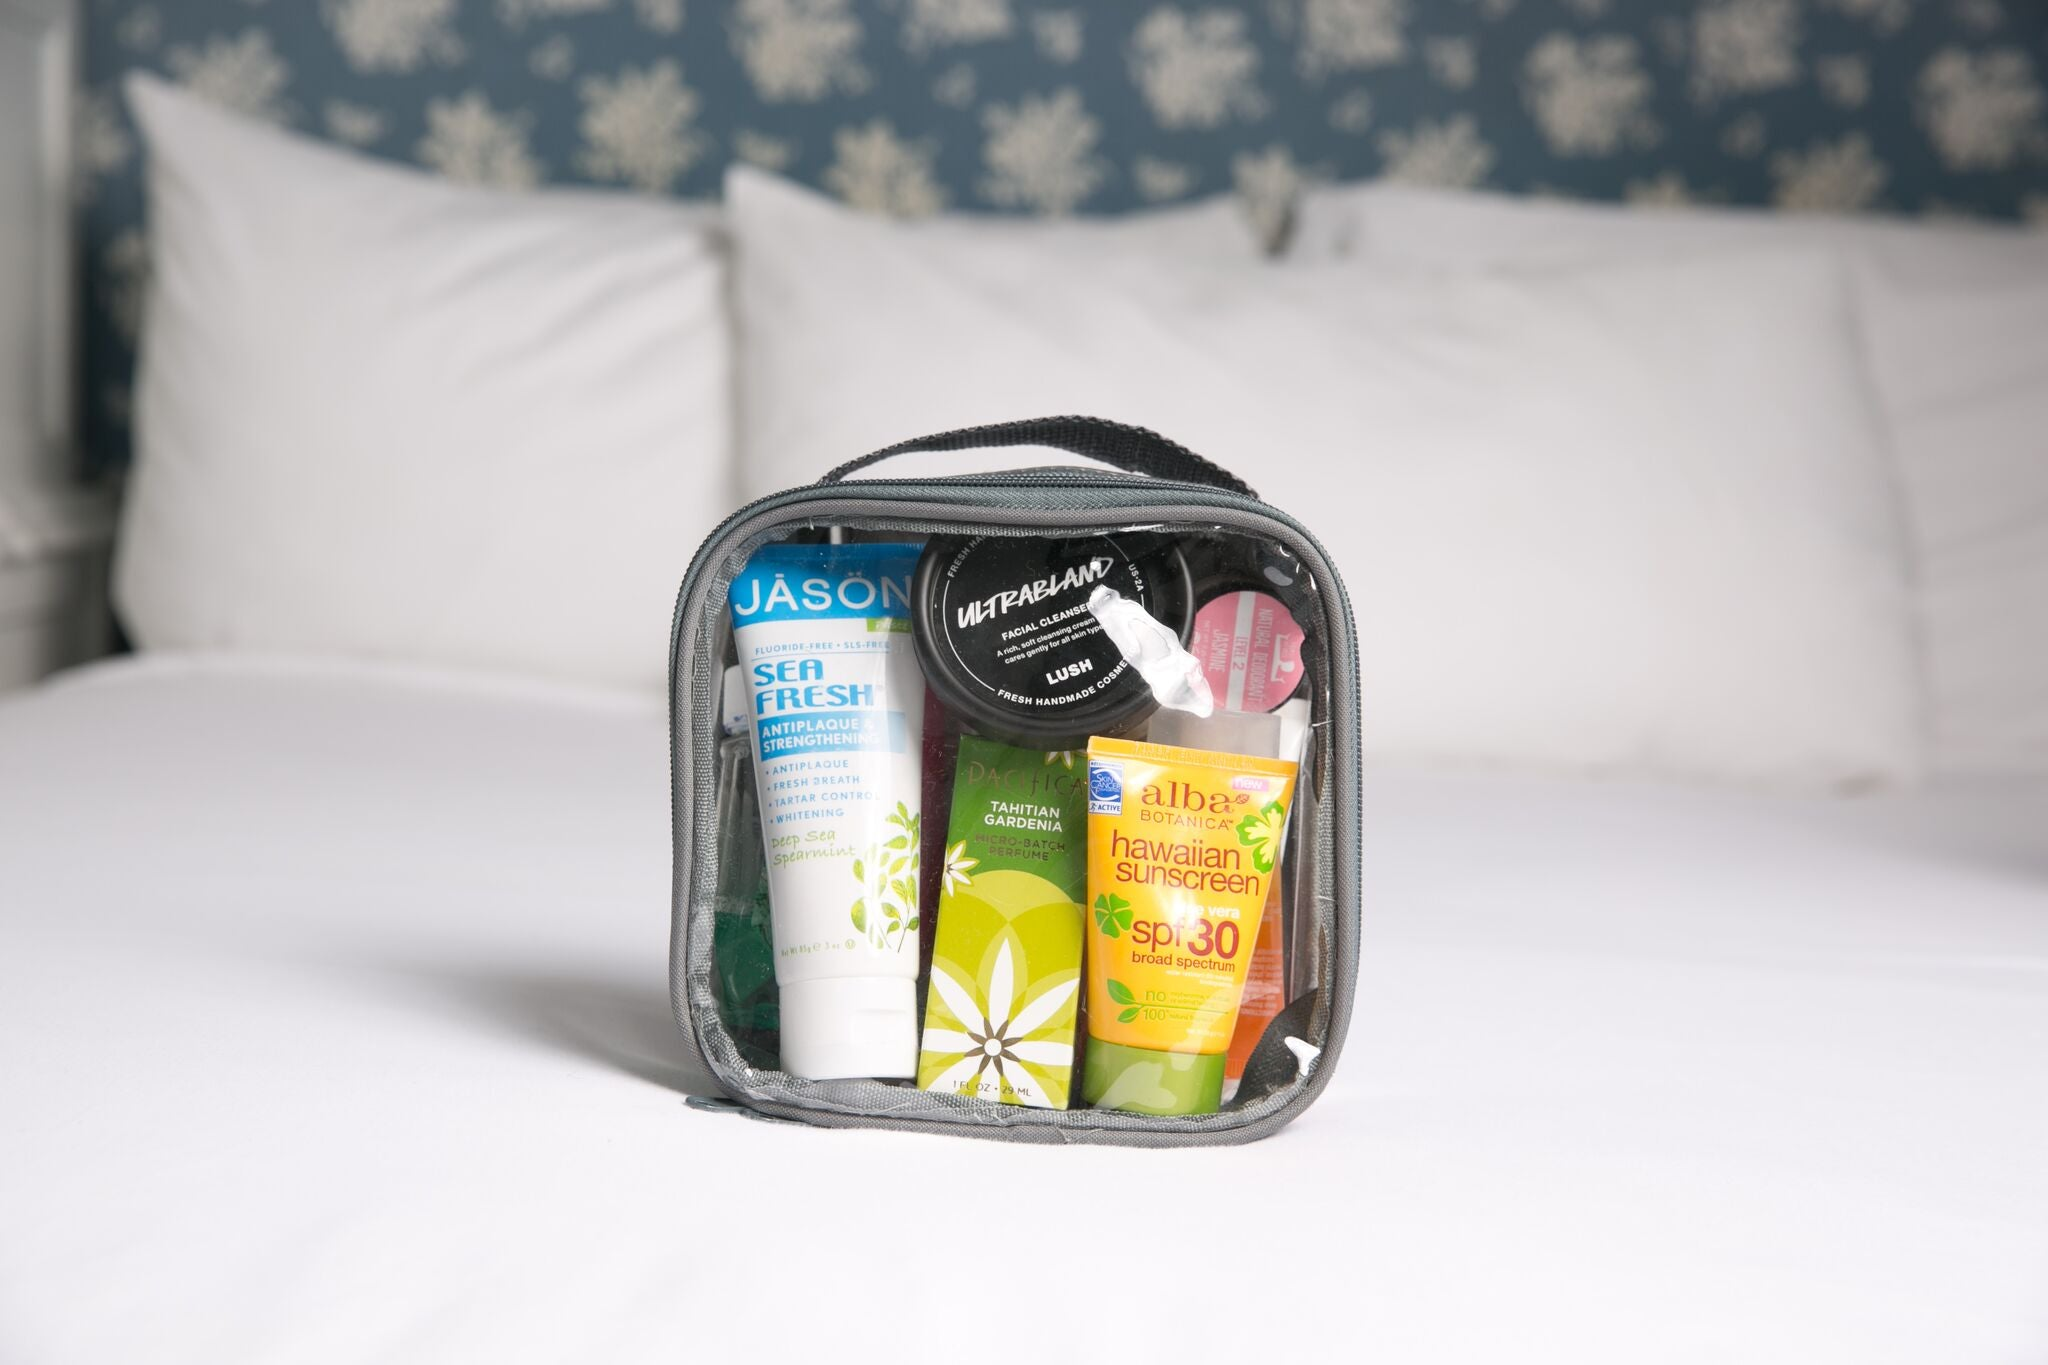 Toiletries for tropical vacation packing list